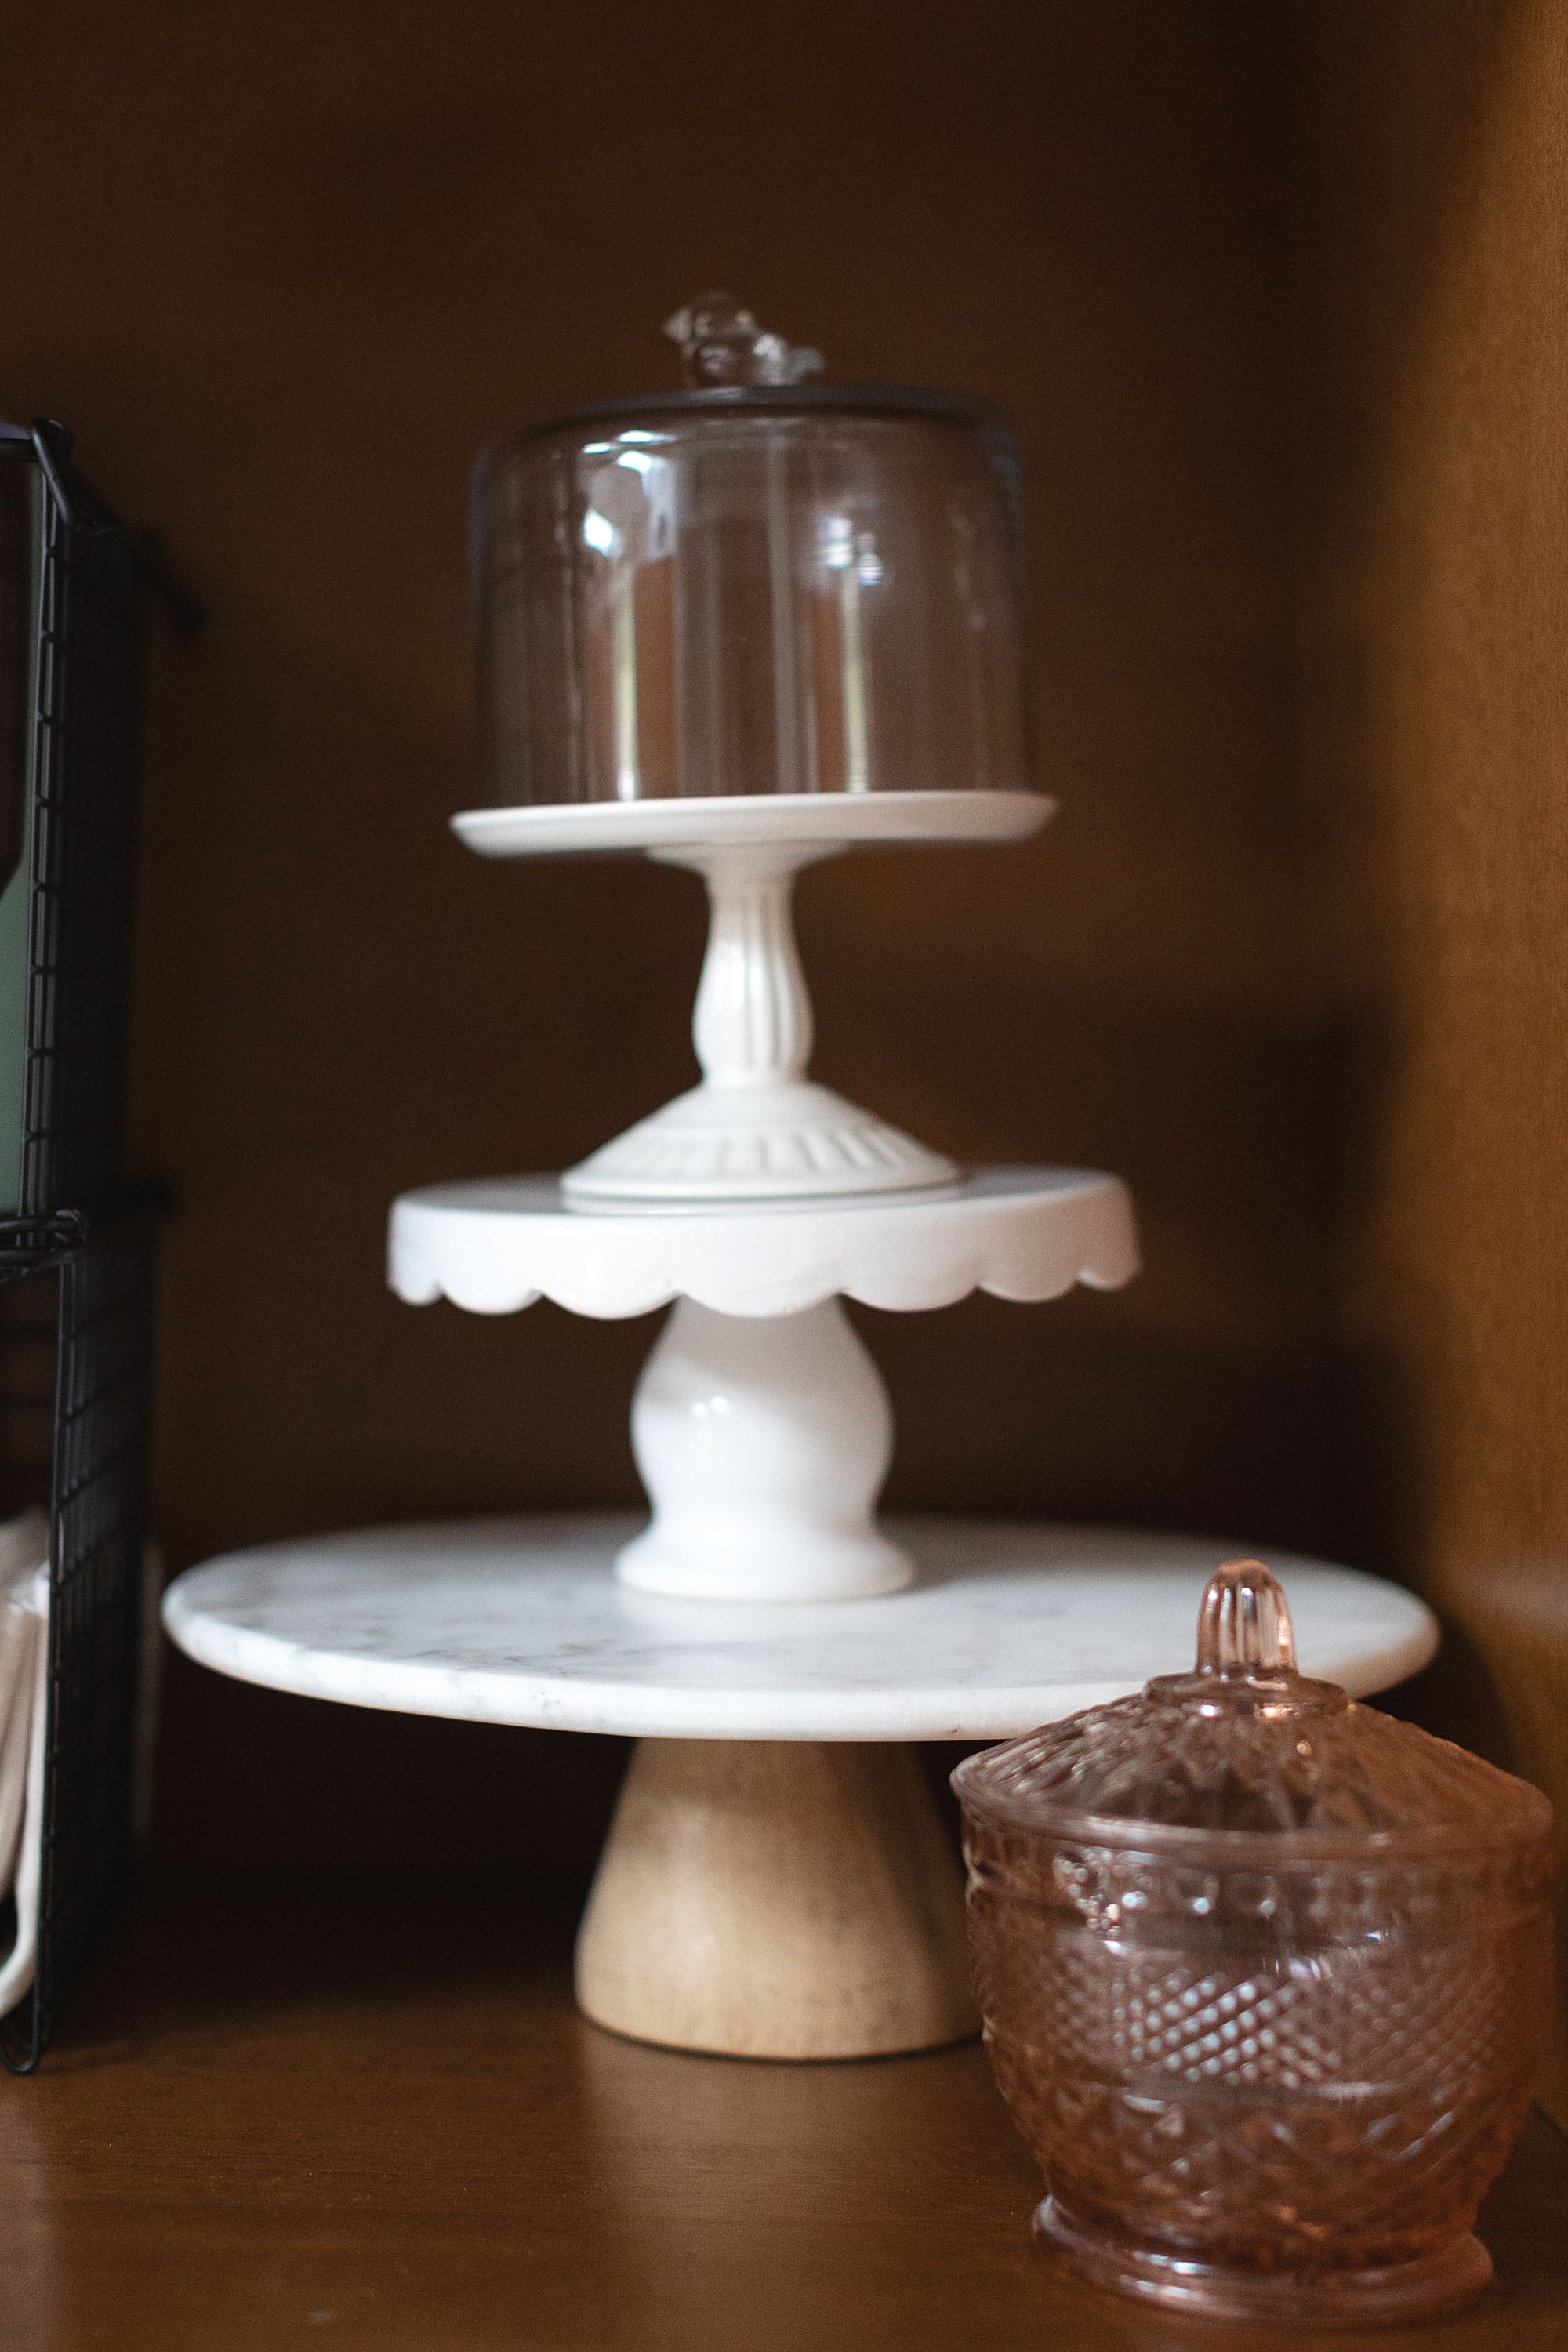 cake stands inside kitchen pantry armoire